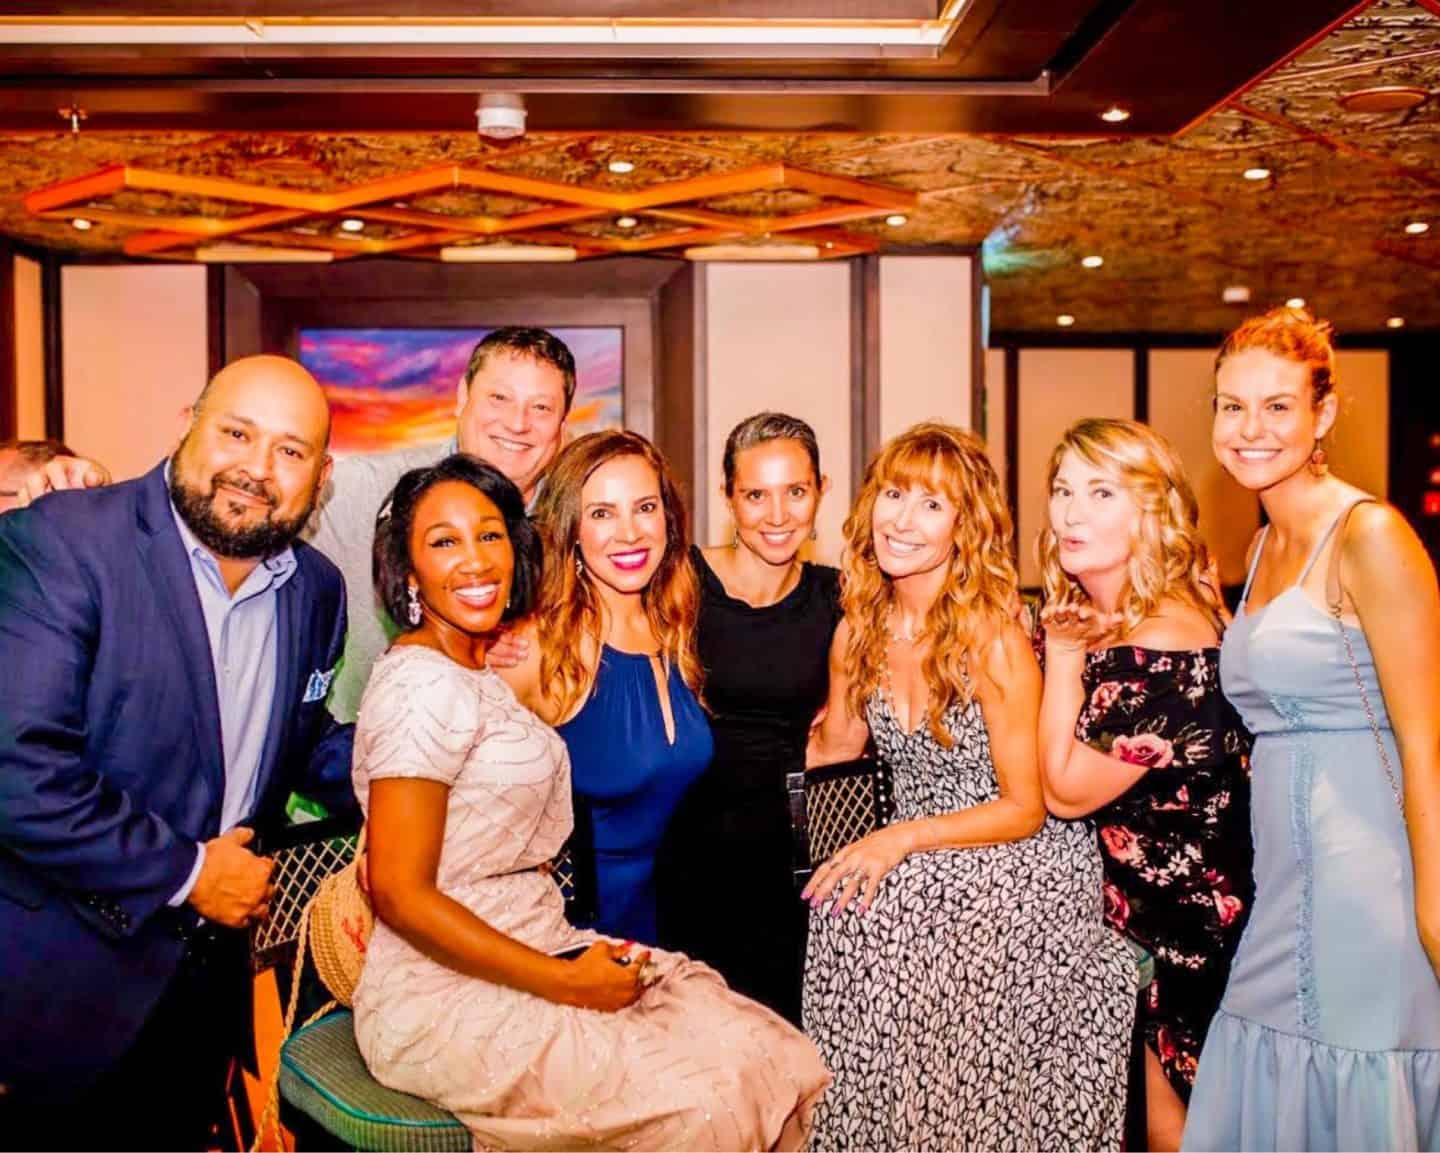 Carnival Cruise Ship Crew Formal Dinner - how to build meaningful relationships